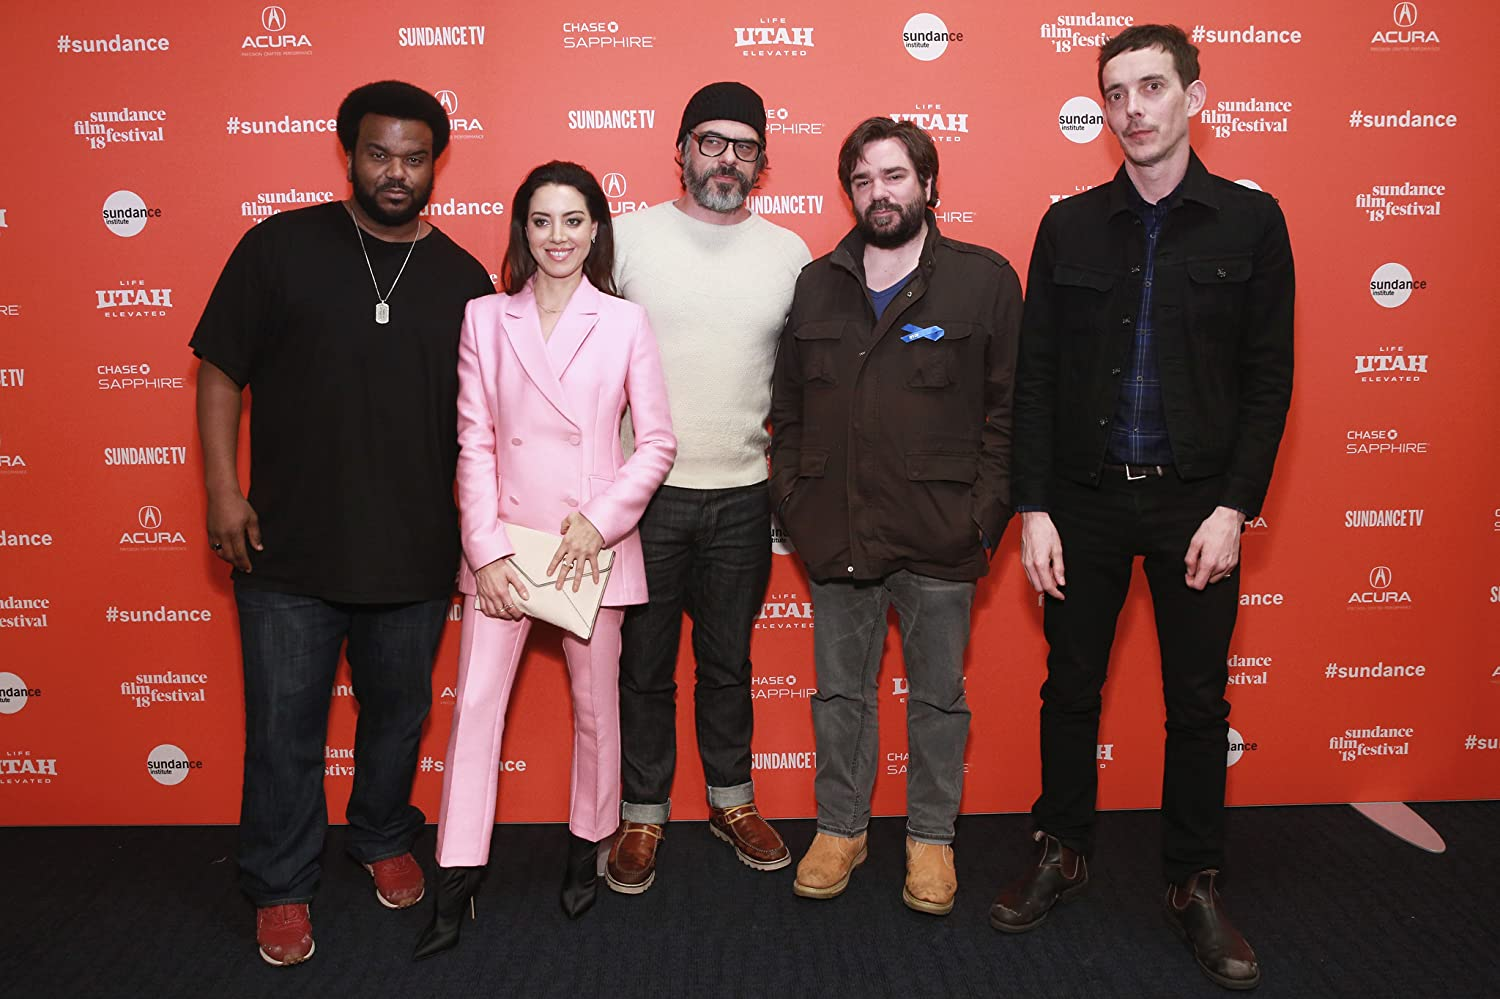 Craig Robinson, Jemaine Clement, Matt Berry, Jim Hosking, and Aubrey Plaza